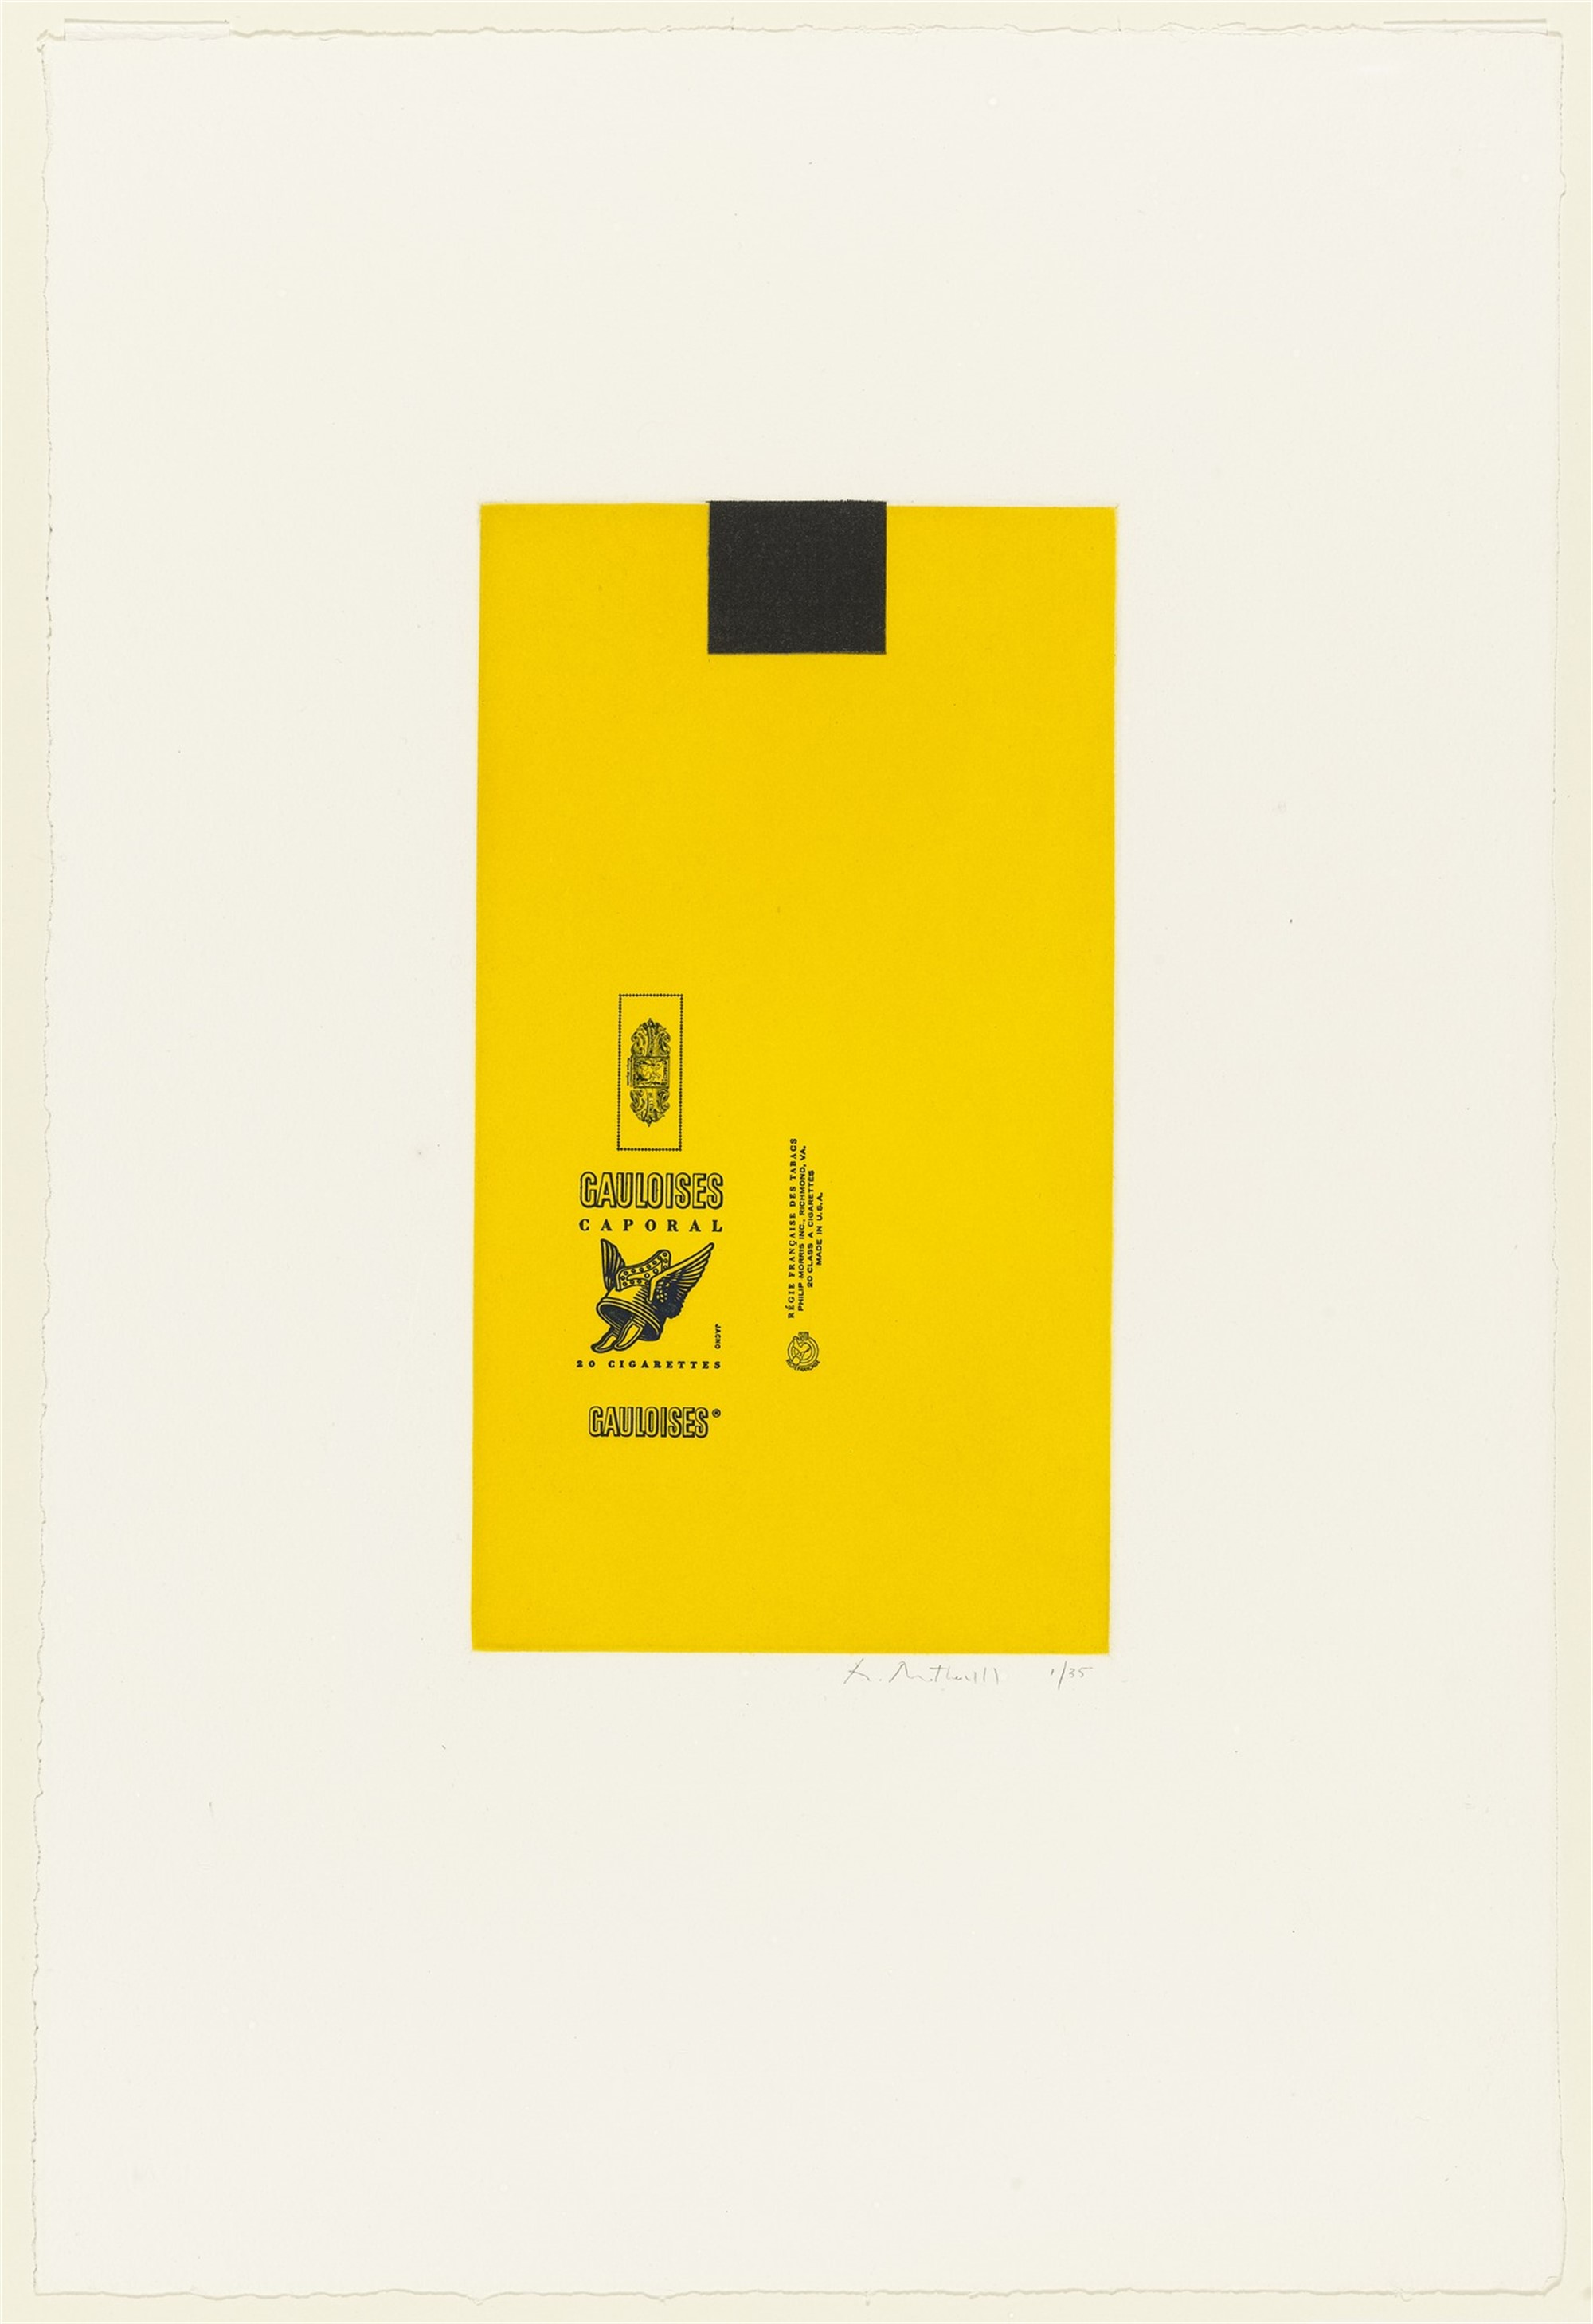 Gauloises Bleues (Yellow with Black Square) by Robert Motherwell